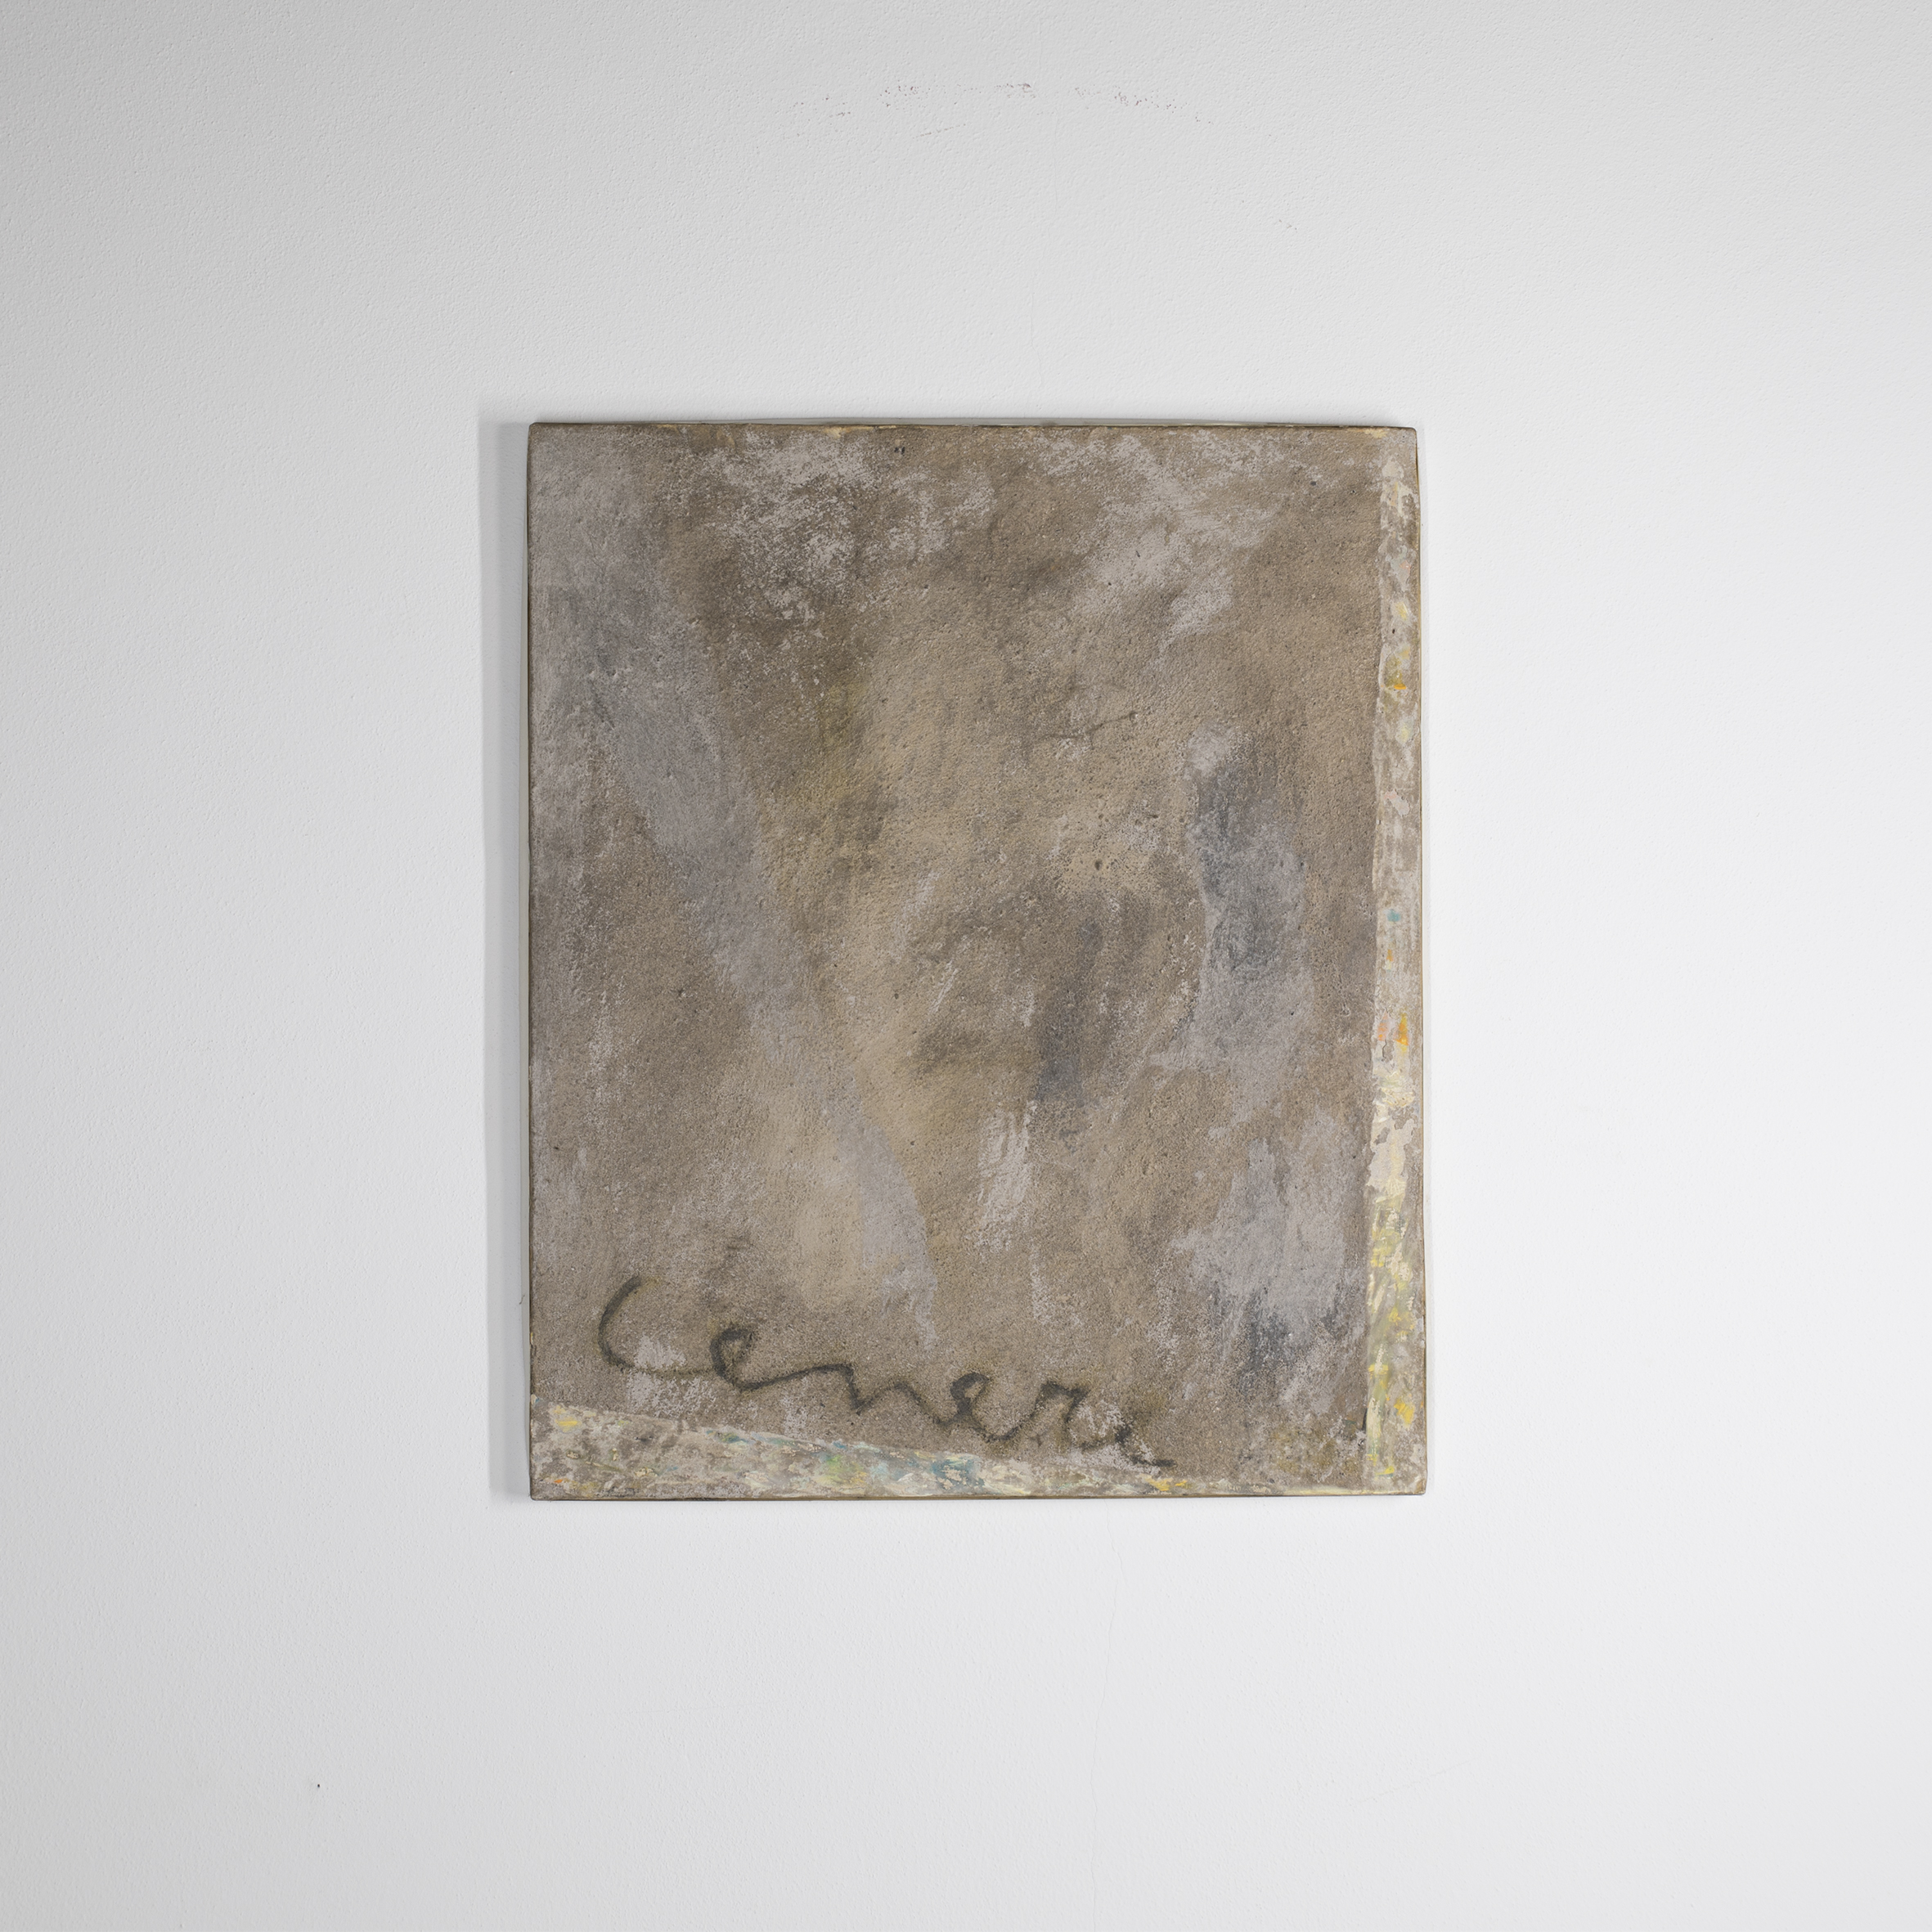 cenere1 - works painting 1974-1988